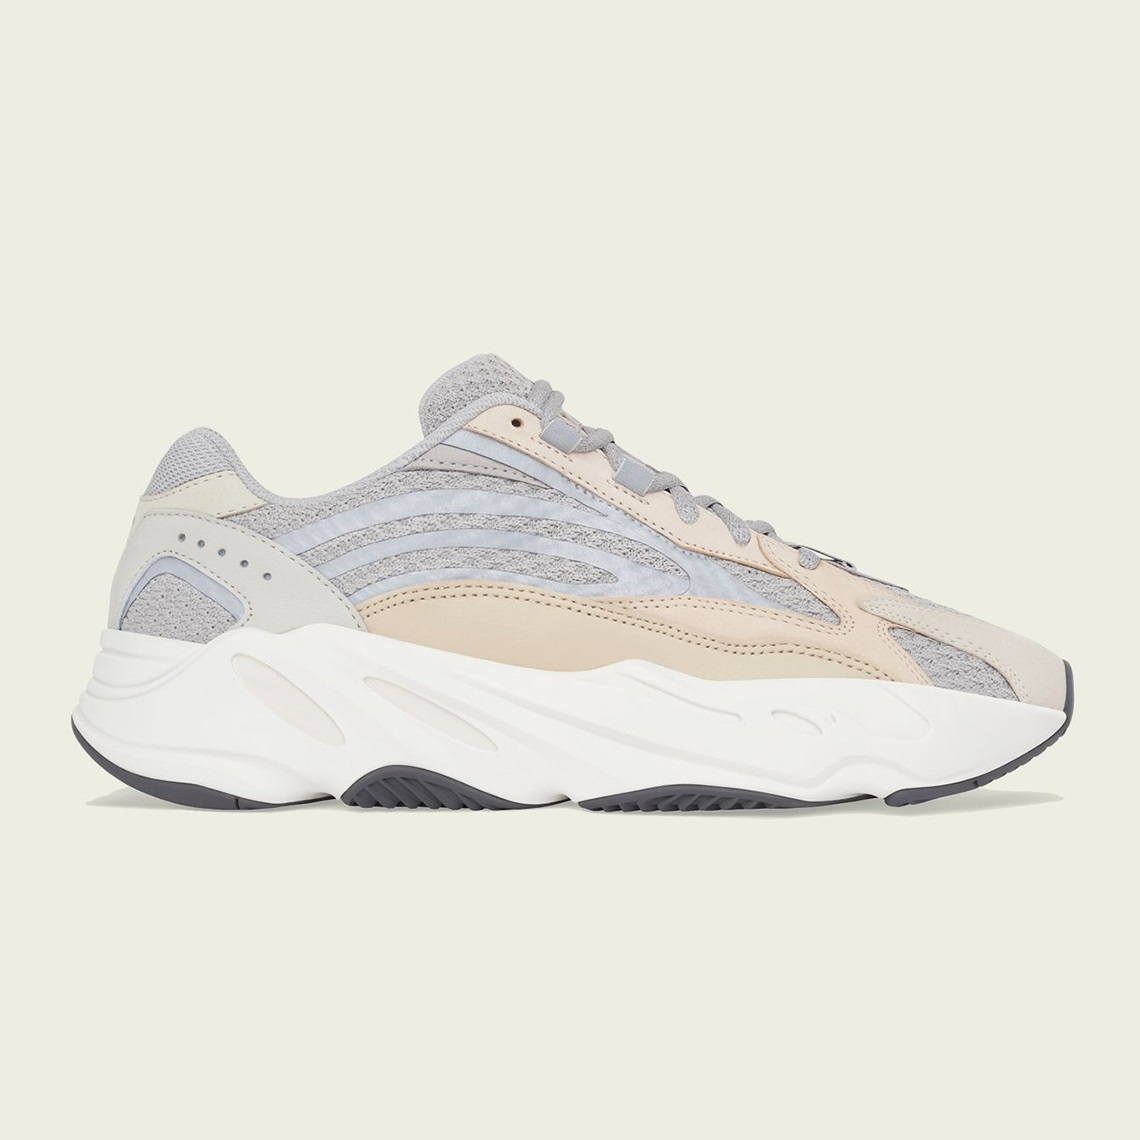 adidas Originals Yeezy 700 V2 'Cream'}